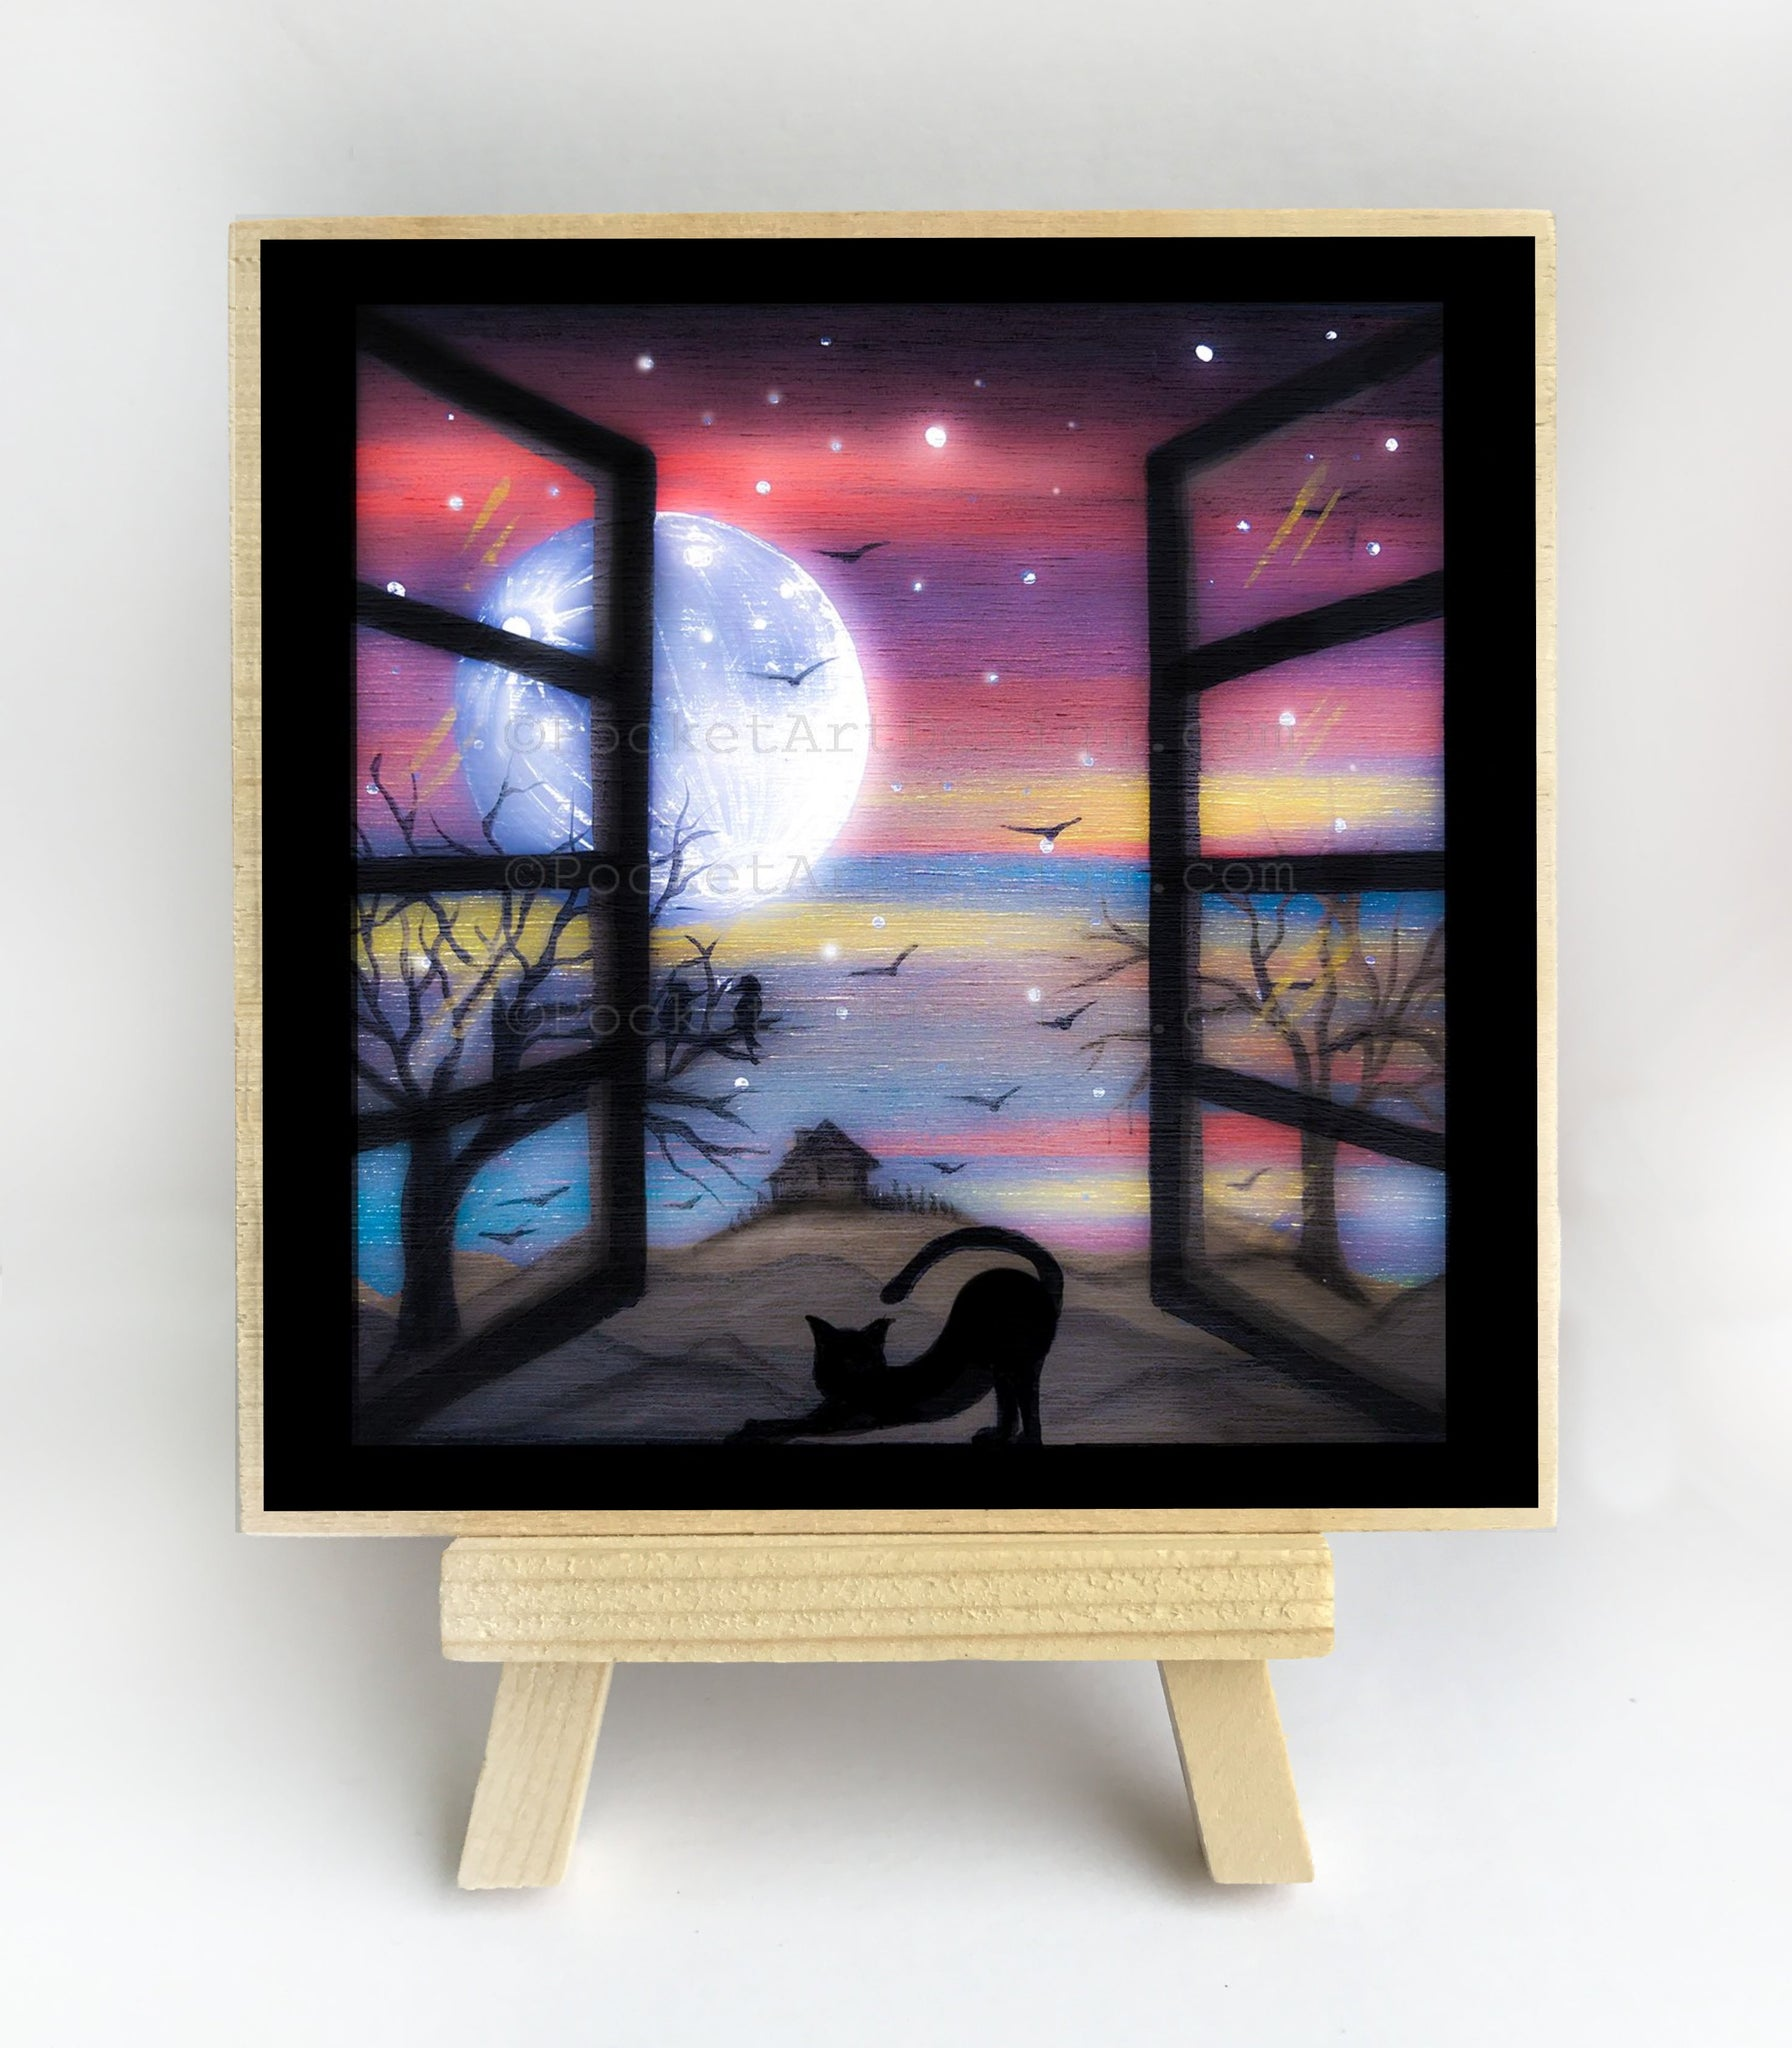 Cat on a window - full moon - silhouette - original miniature art print on 4 x 4 wood-Print-Easel Wood-PocketArtDesigns-Original Art-wall rt